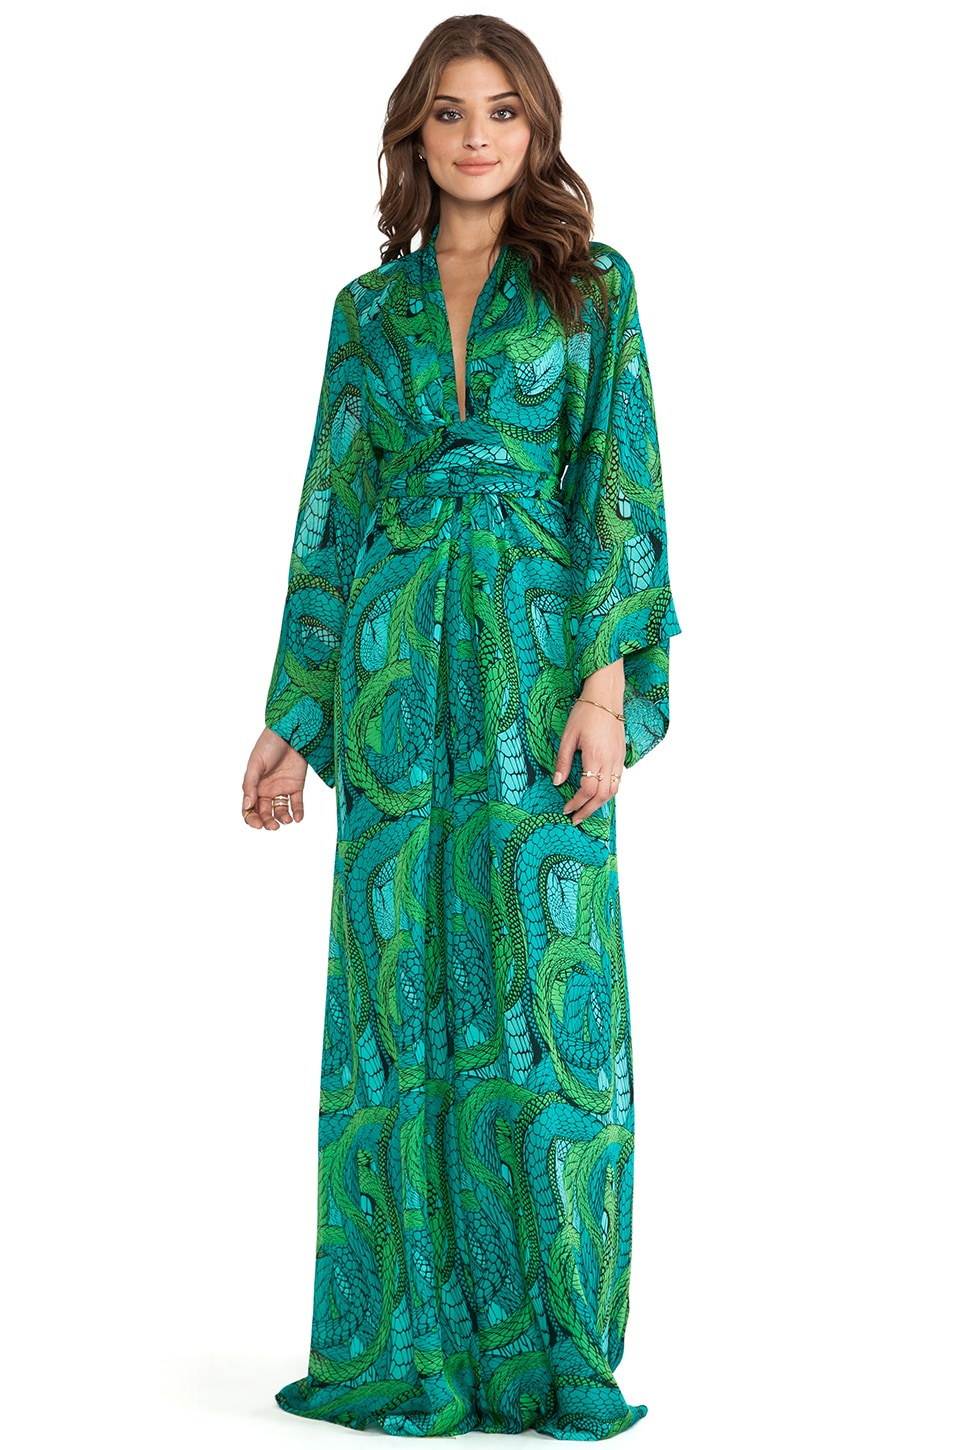 Issa Long Sleeve Printed Maxi Dress in Nile